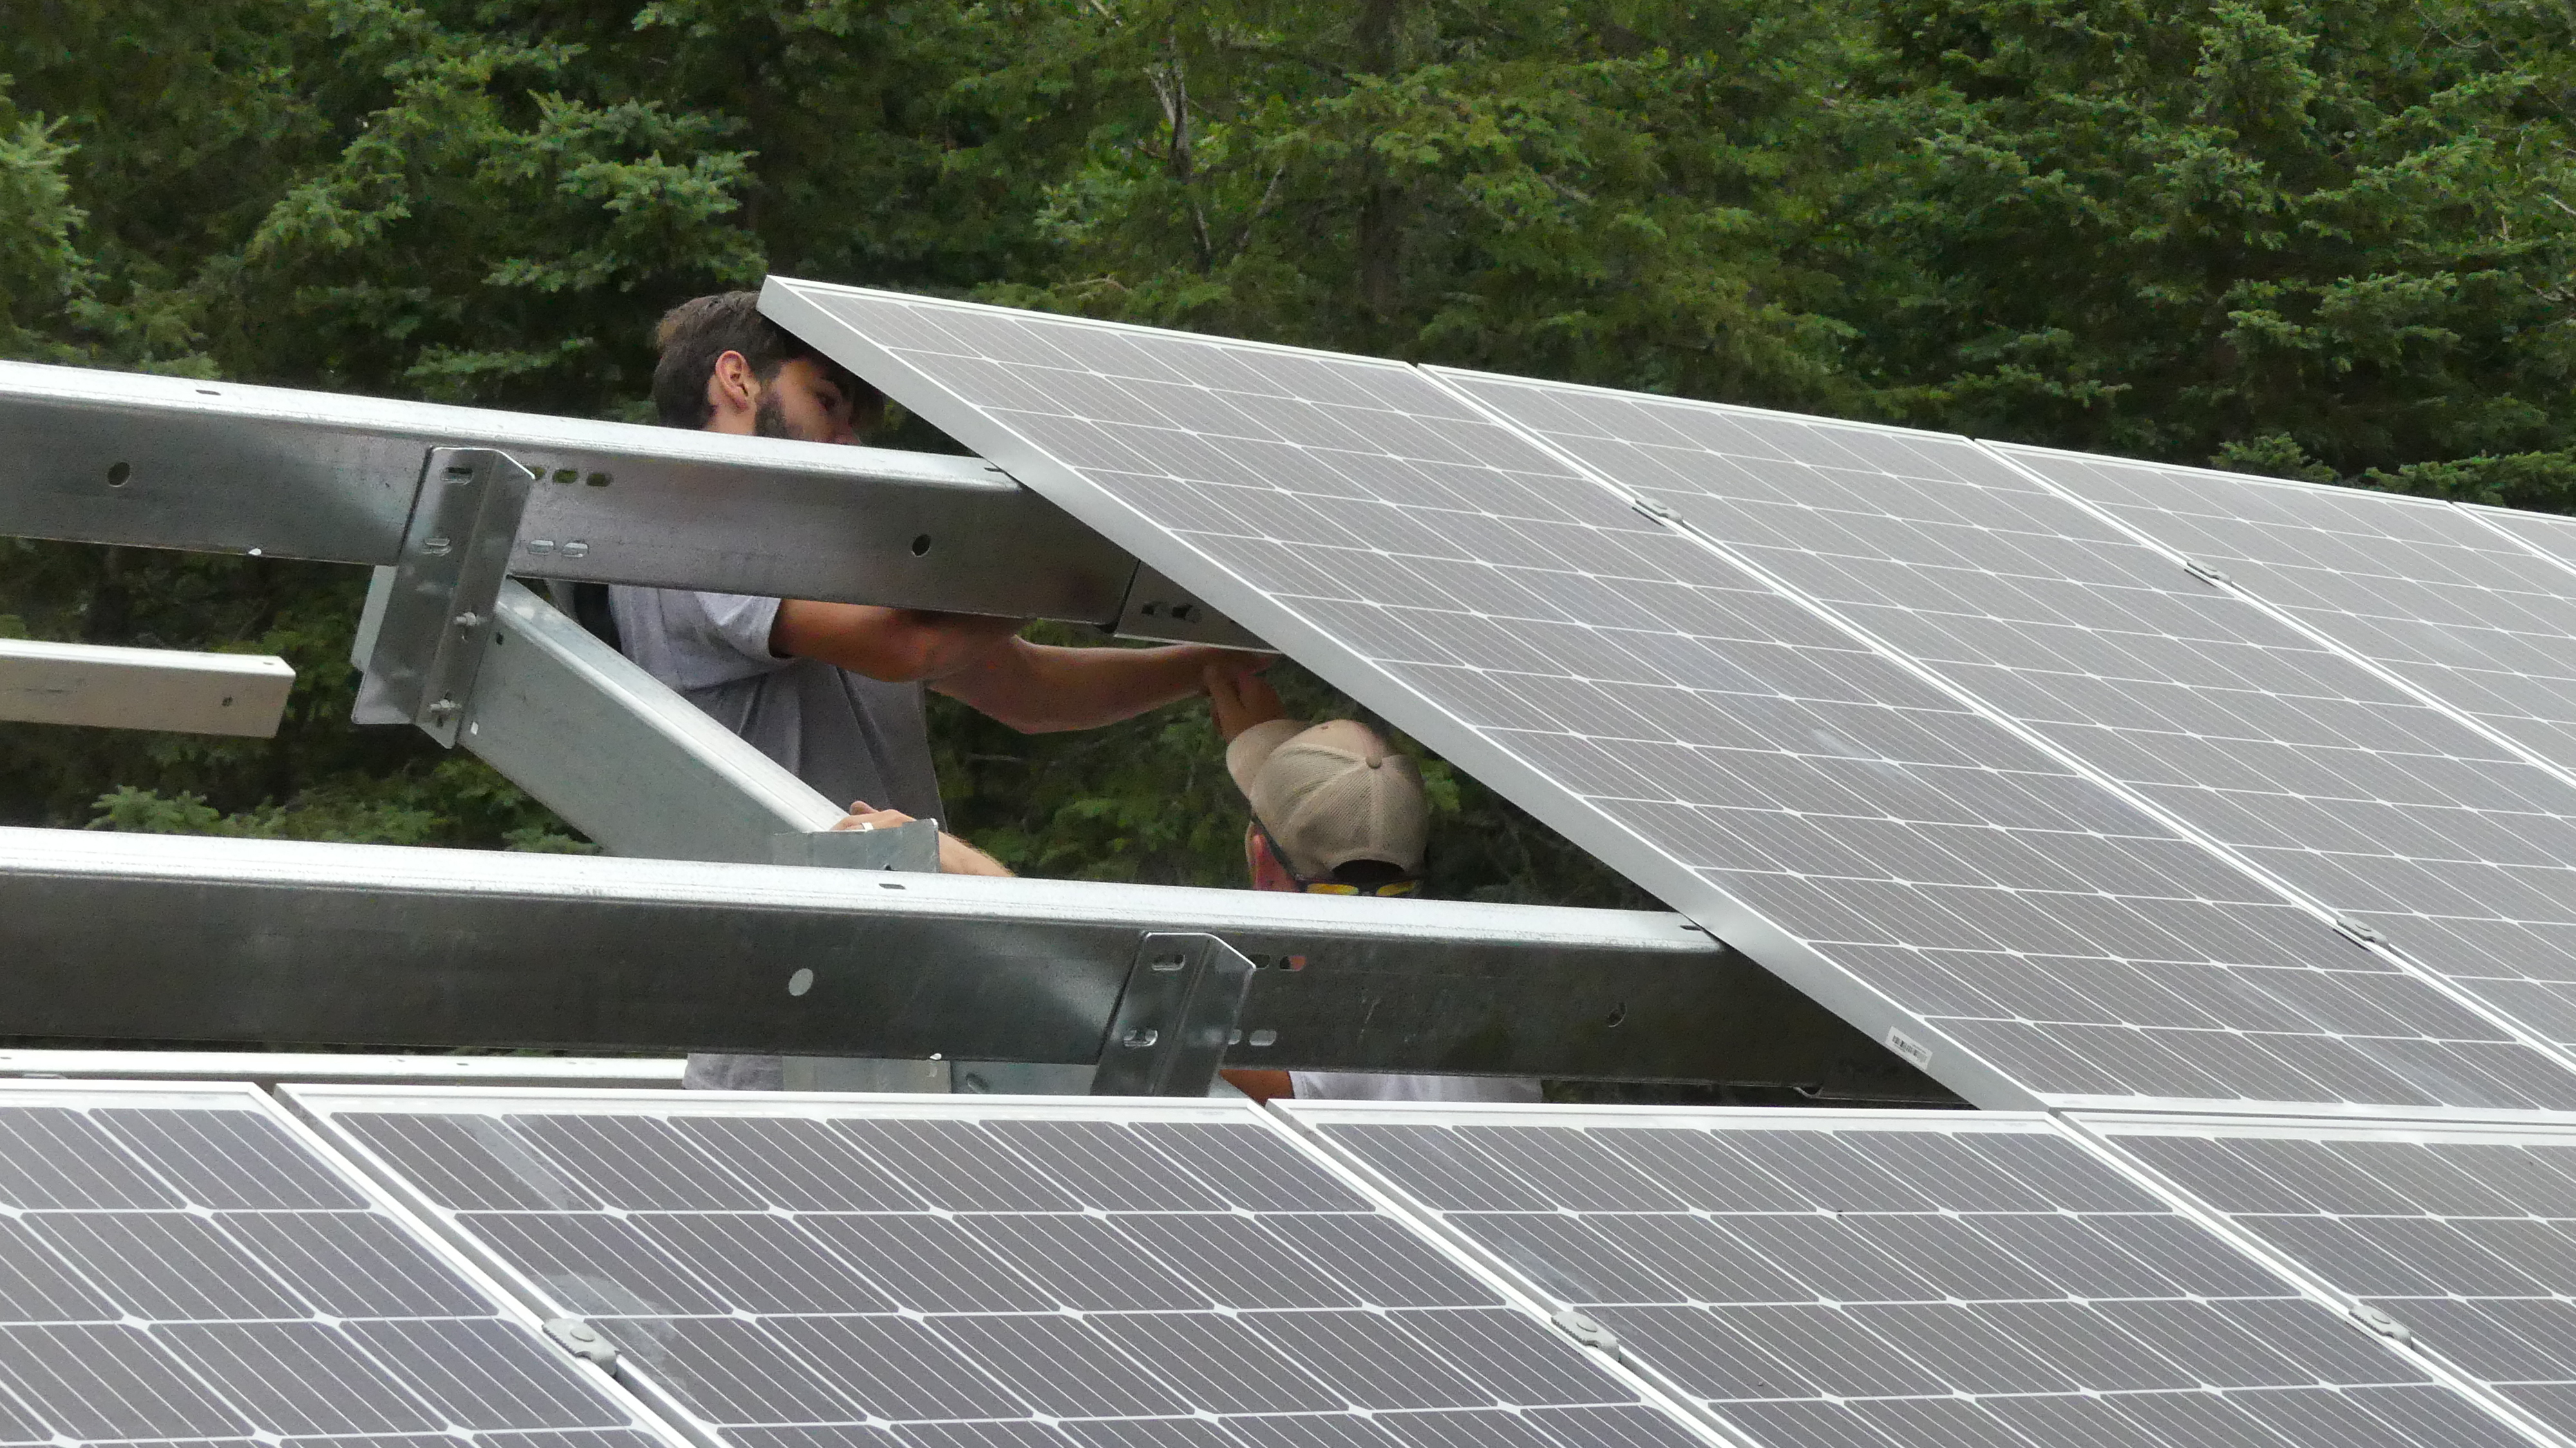 The Harders expect their solar panels to pay for themselves within 11 years. (Cameron MacLean/CBC)